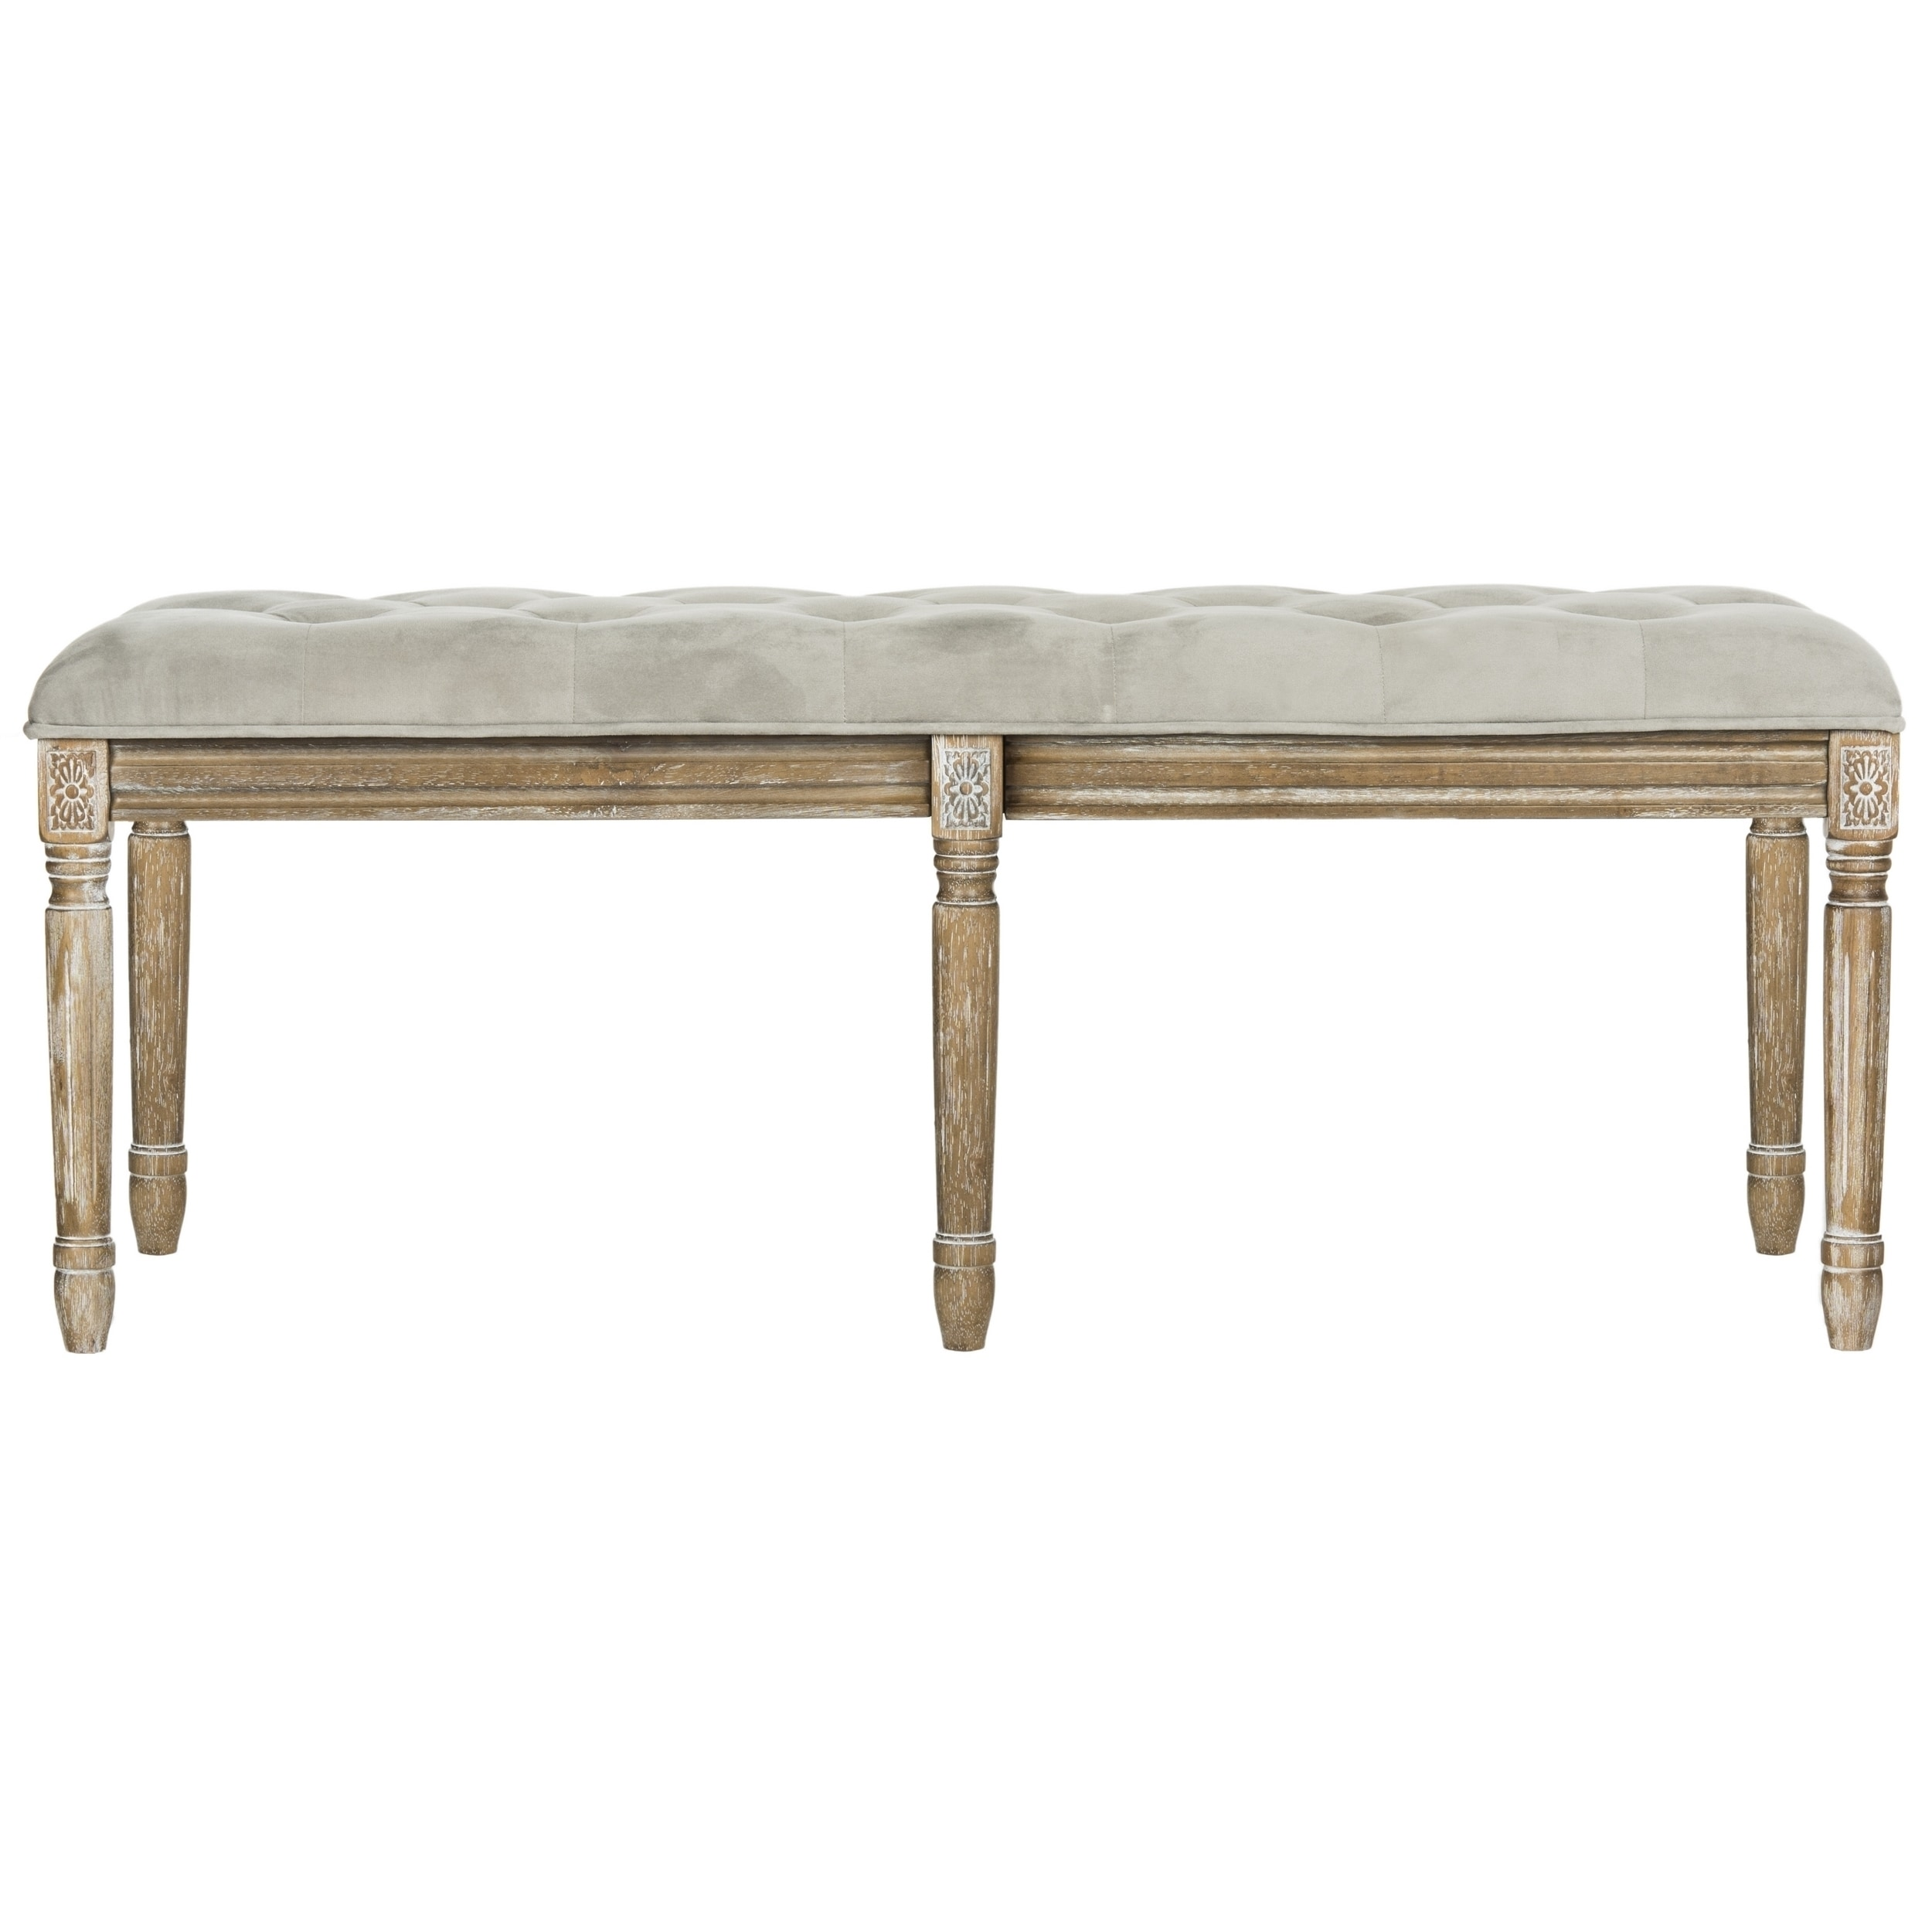 Chaise Brasserie Safavieh Rocha French Brasserie Tufted Rustic Wood Grey Bench 47 3